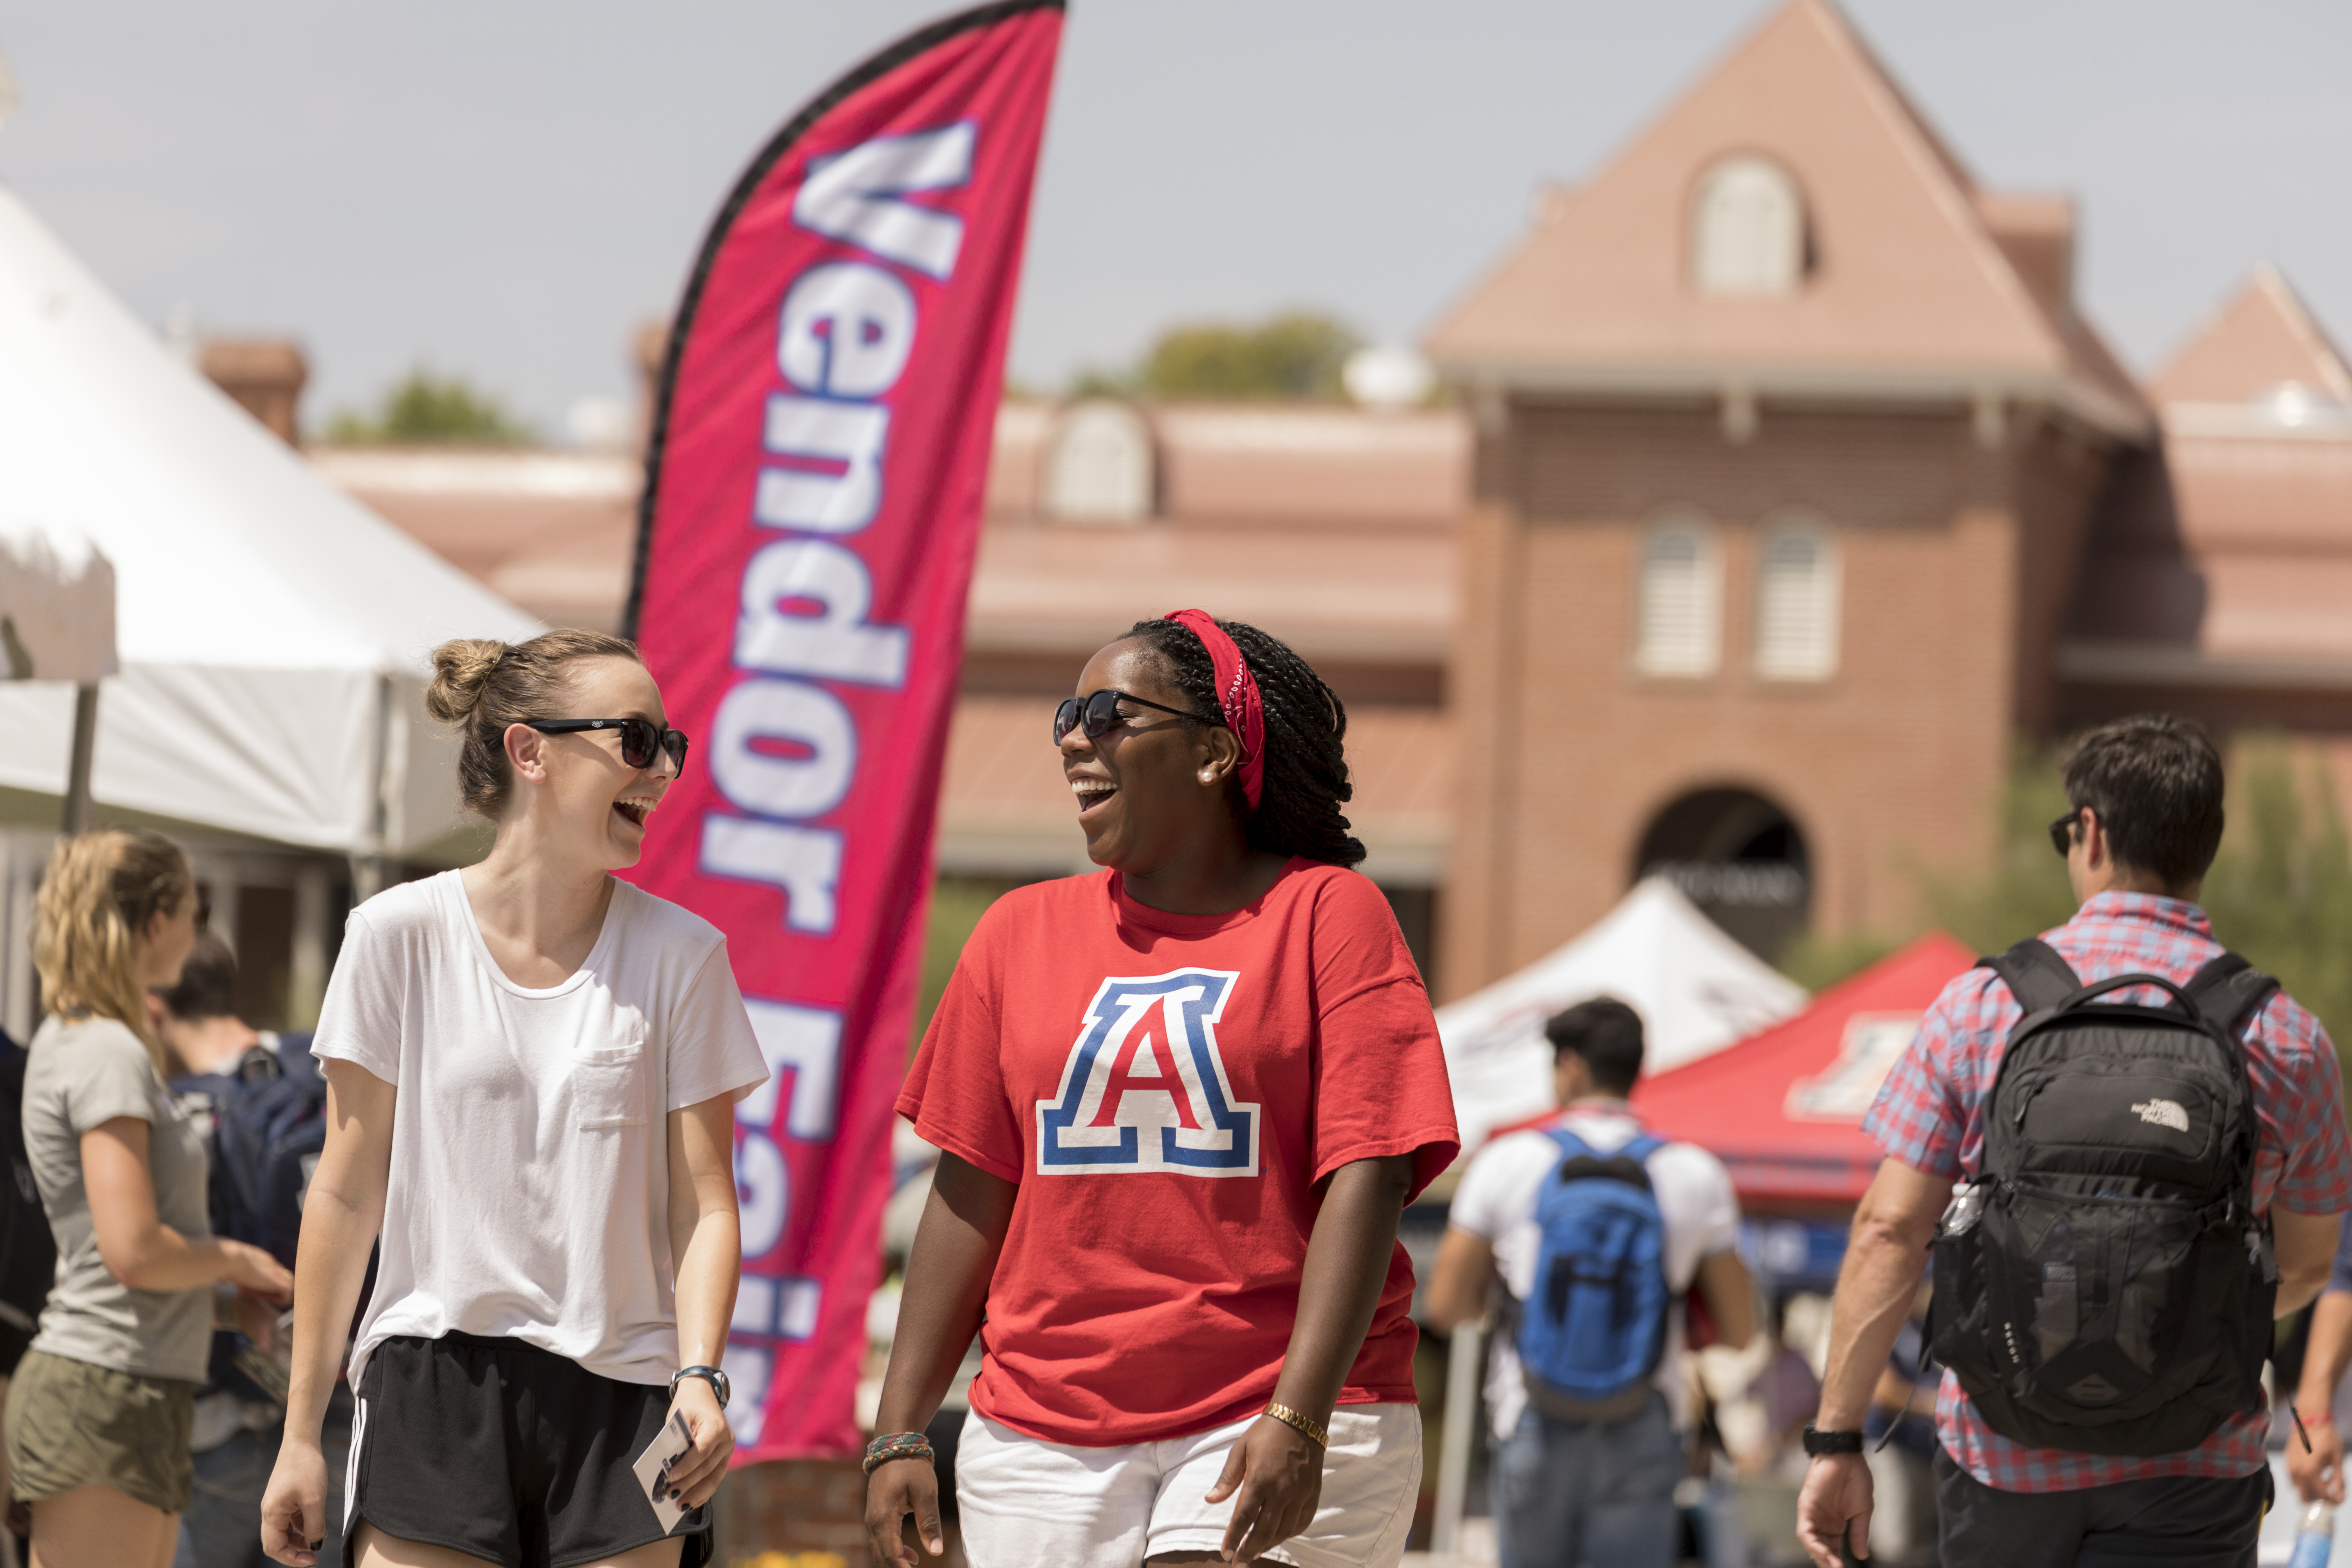 Two students walking at an event on the University of Arizona Mall